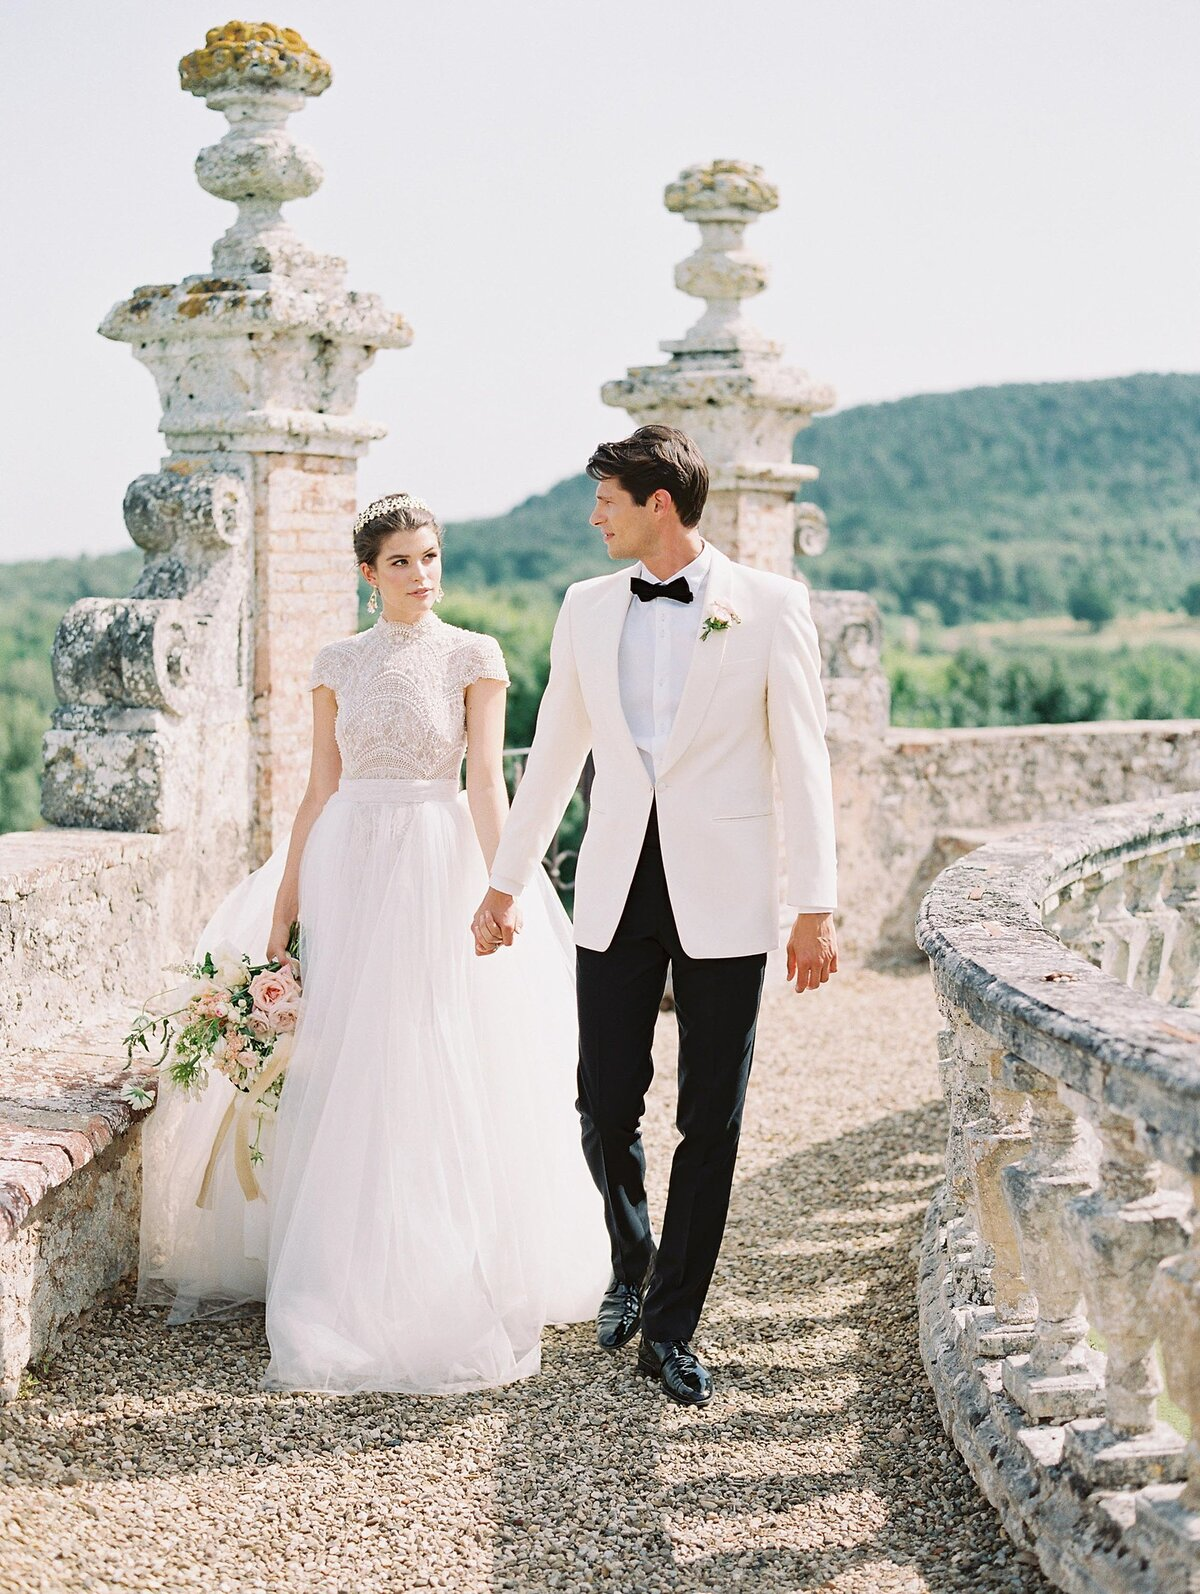 NKT-Events_Wedding-Inspiration-Editorial_Castello-di-Celsa_0358